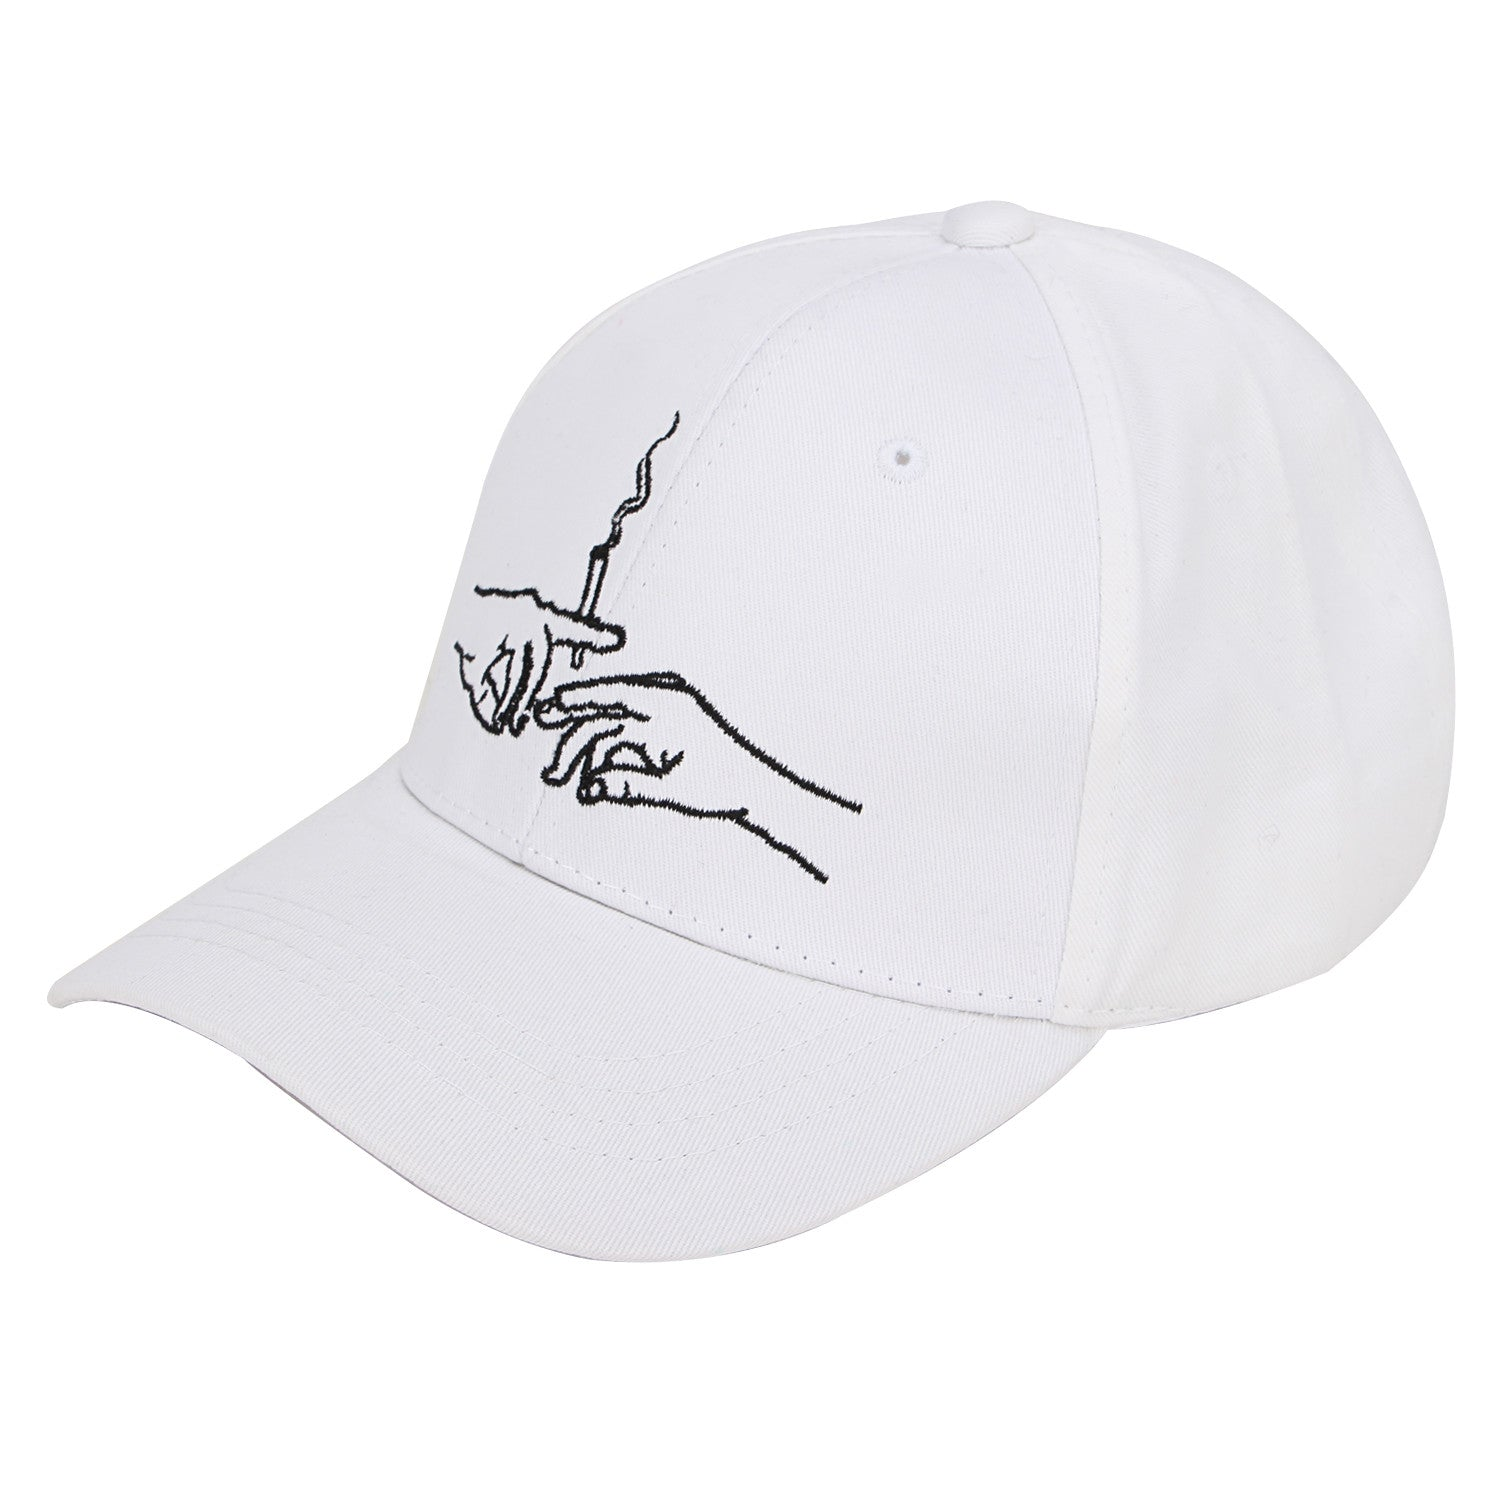 The Only Thing People Share Dad Hat (White)